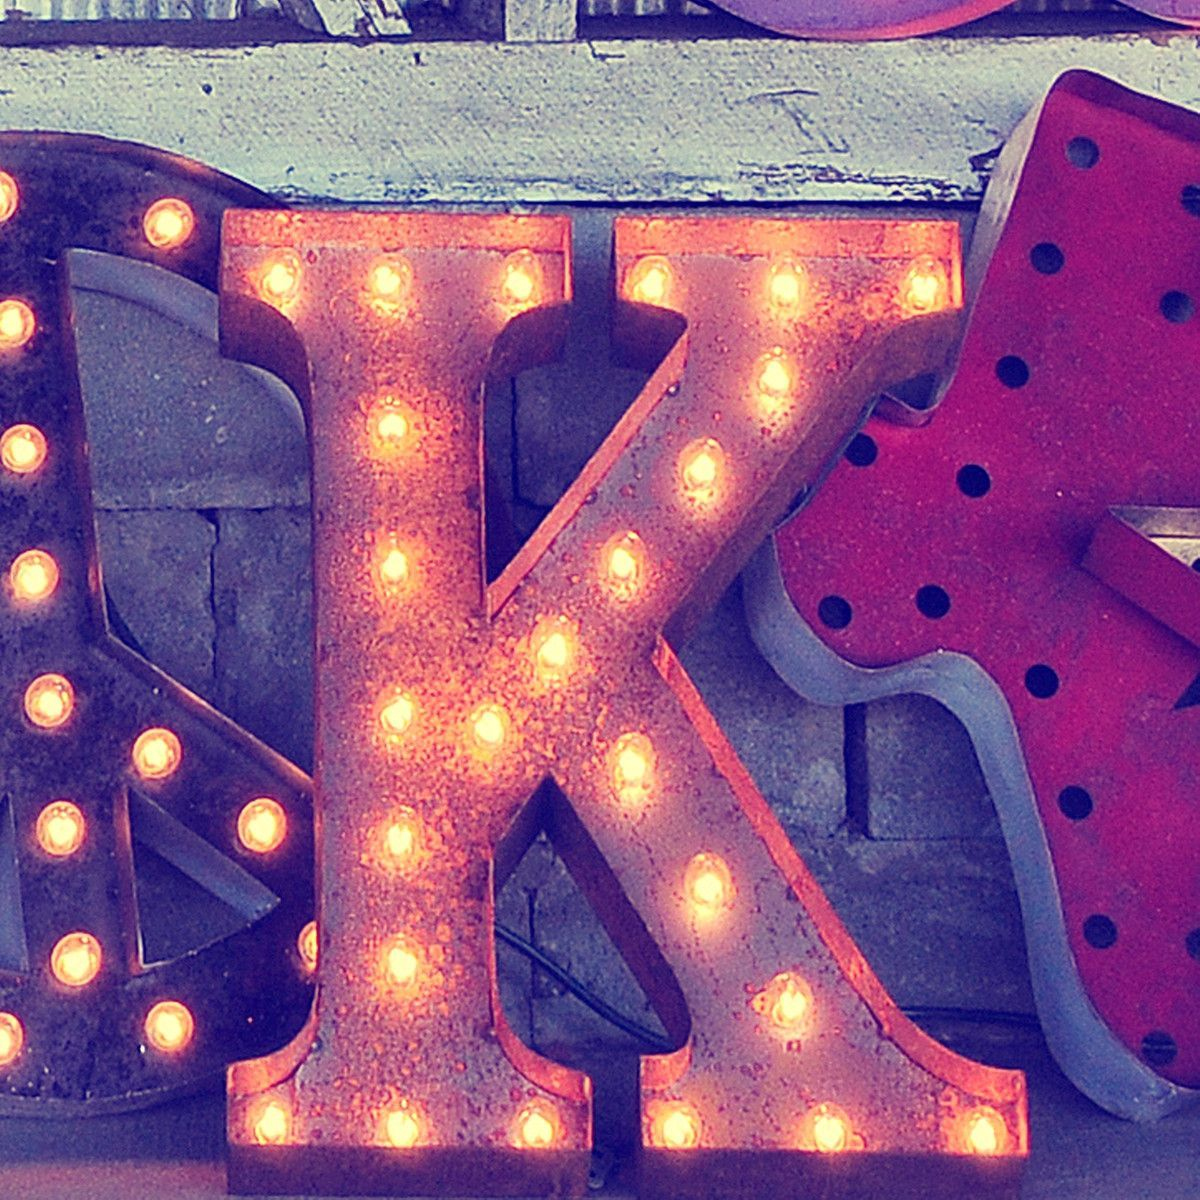 24 Letter K Lighted Vintage Marquee Letters Rustic Vintage Marquee Letters Lighted Marquee Letters Vintage Marquee